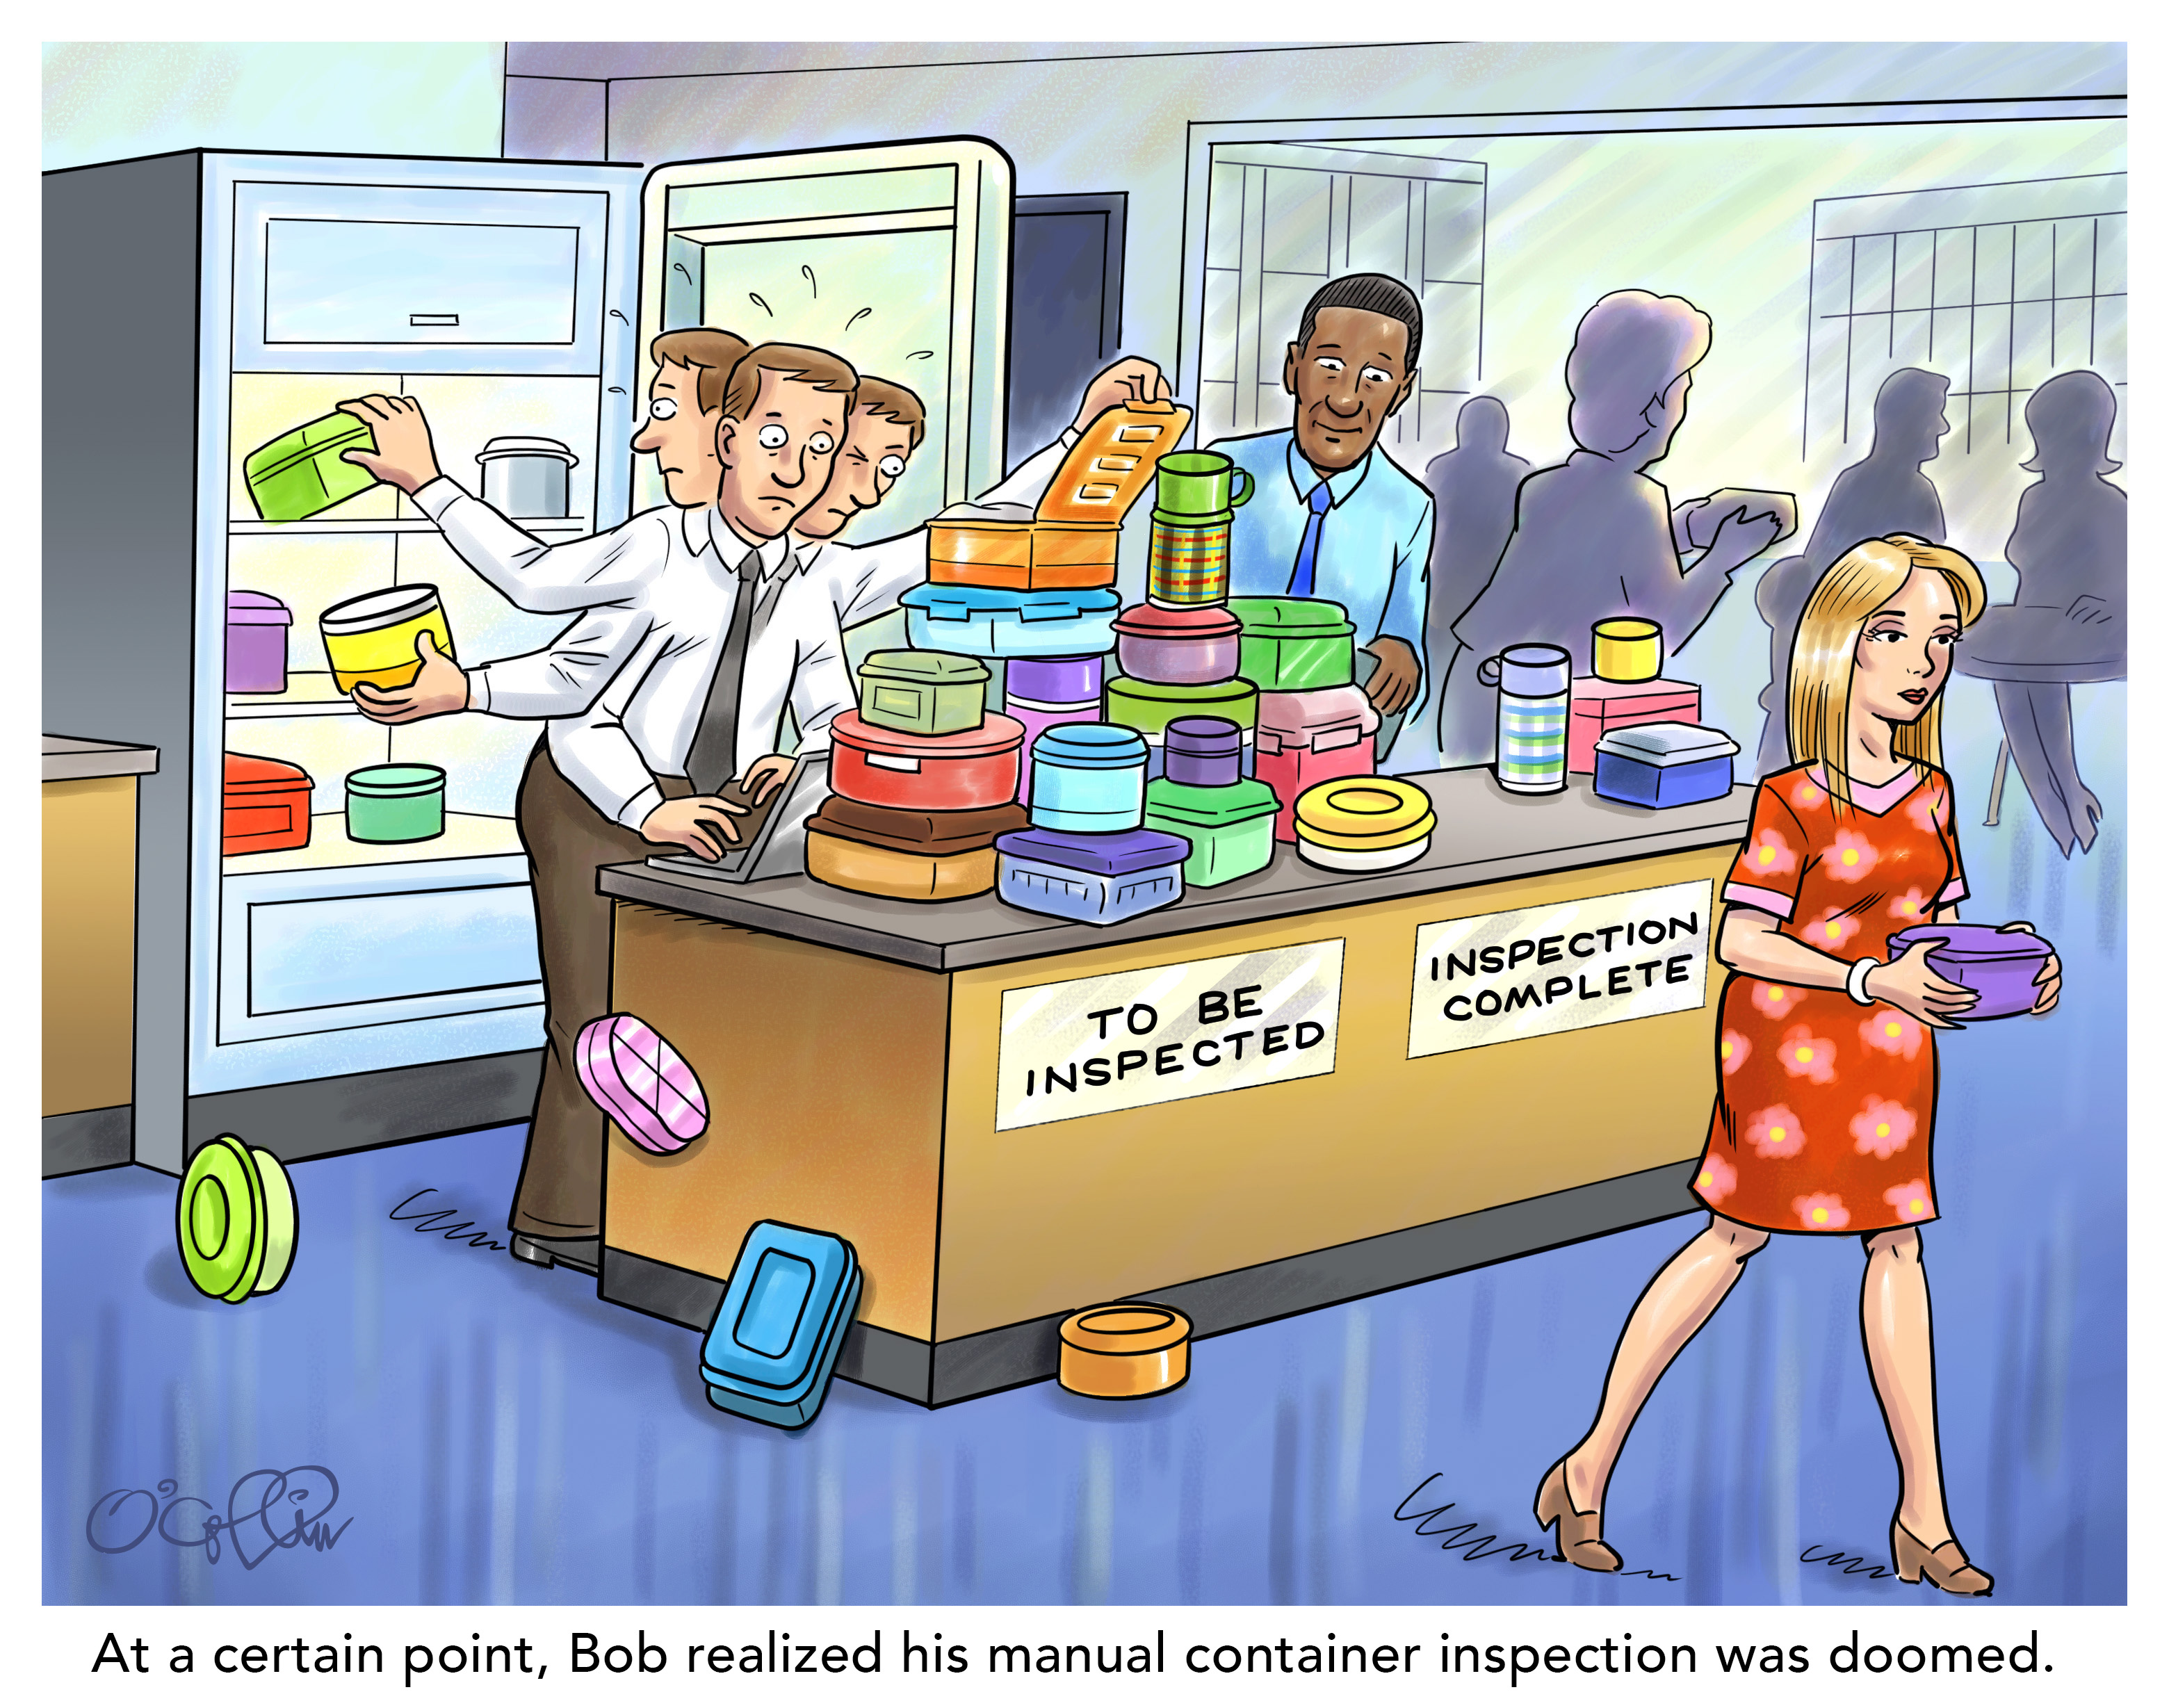 hero-blog-generic-container-automation-cartoon-1920x350